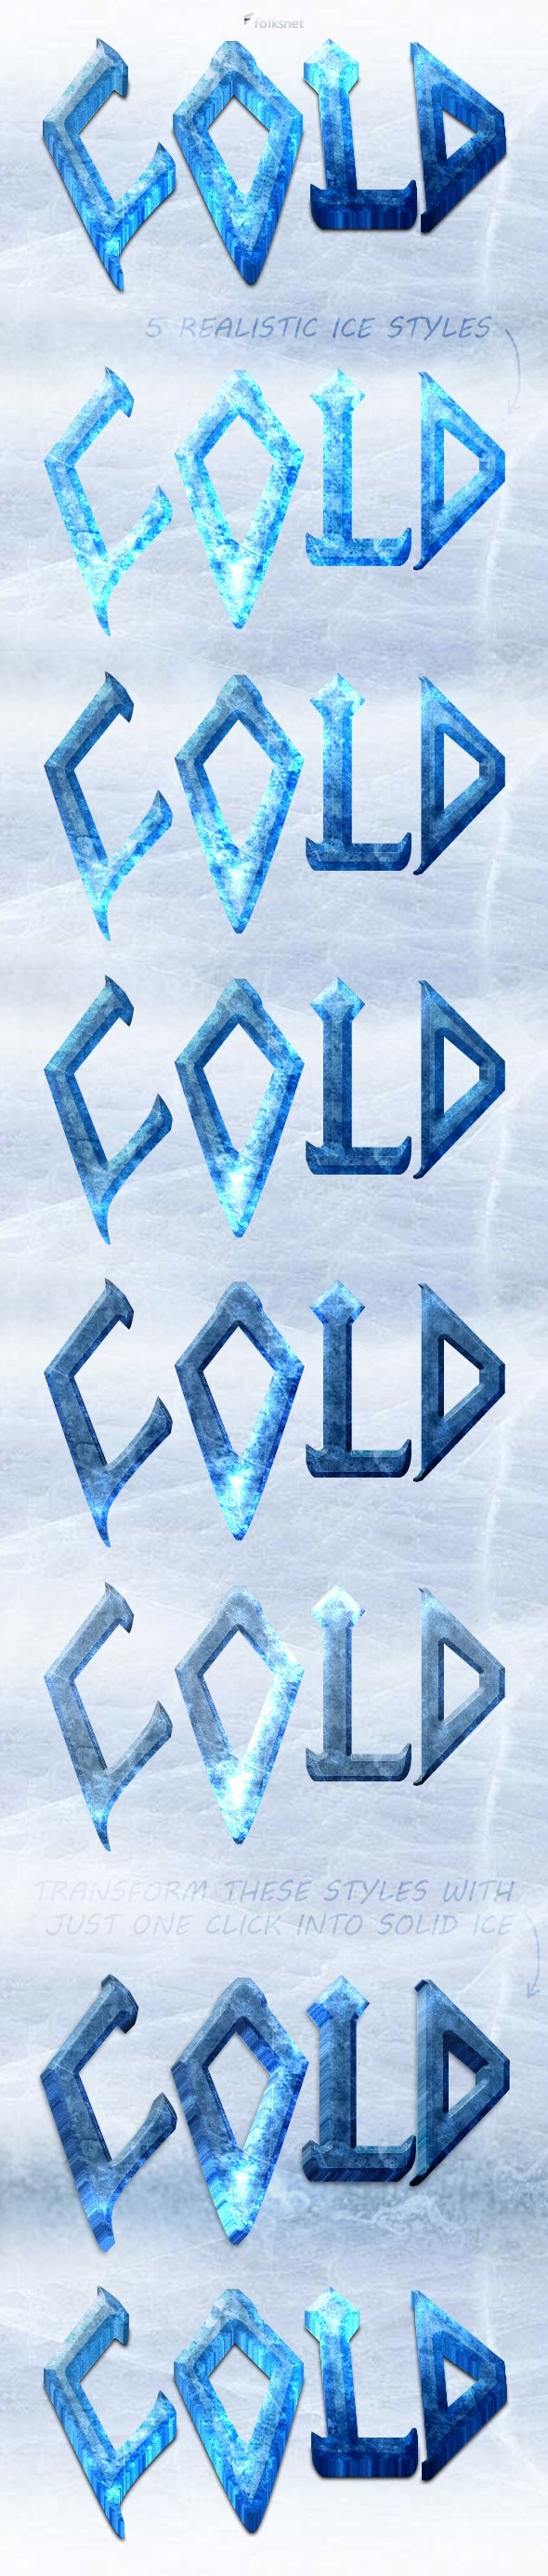 3D Ice Styles - Text Effects Styles